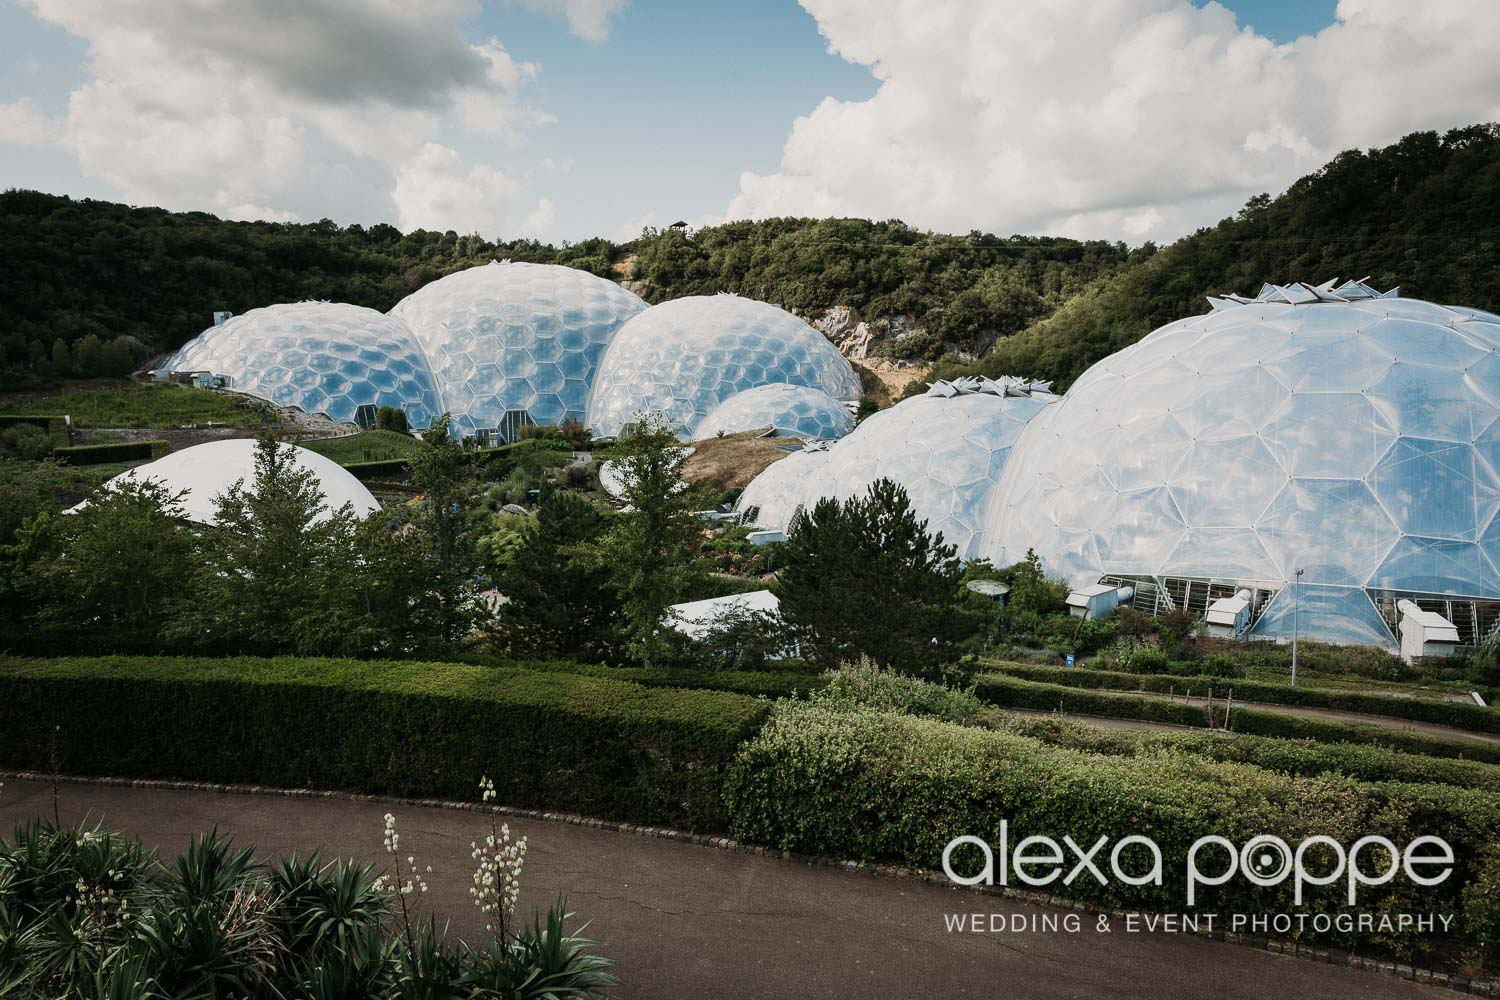 VA_wedding_edenproject_carnglaze_49.jpg